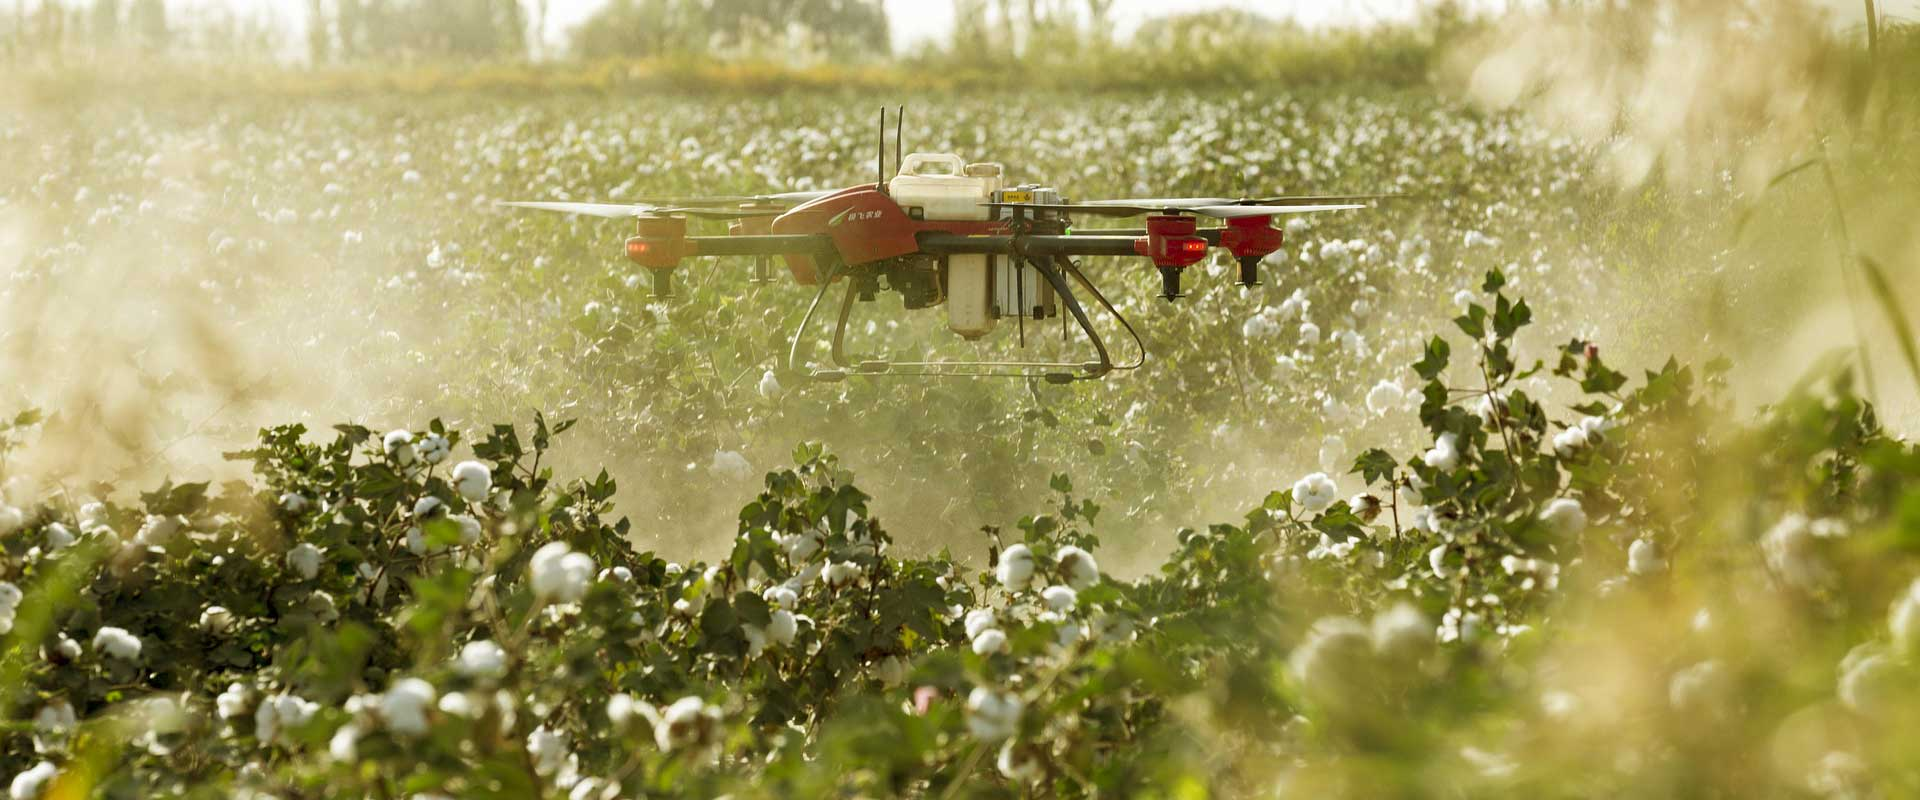 Drone Technology and Agriculture – A Happy Marriage